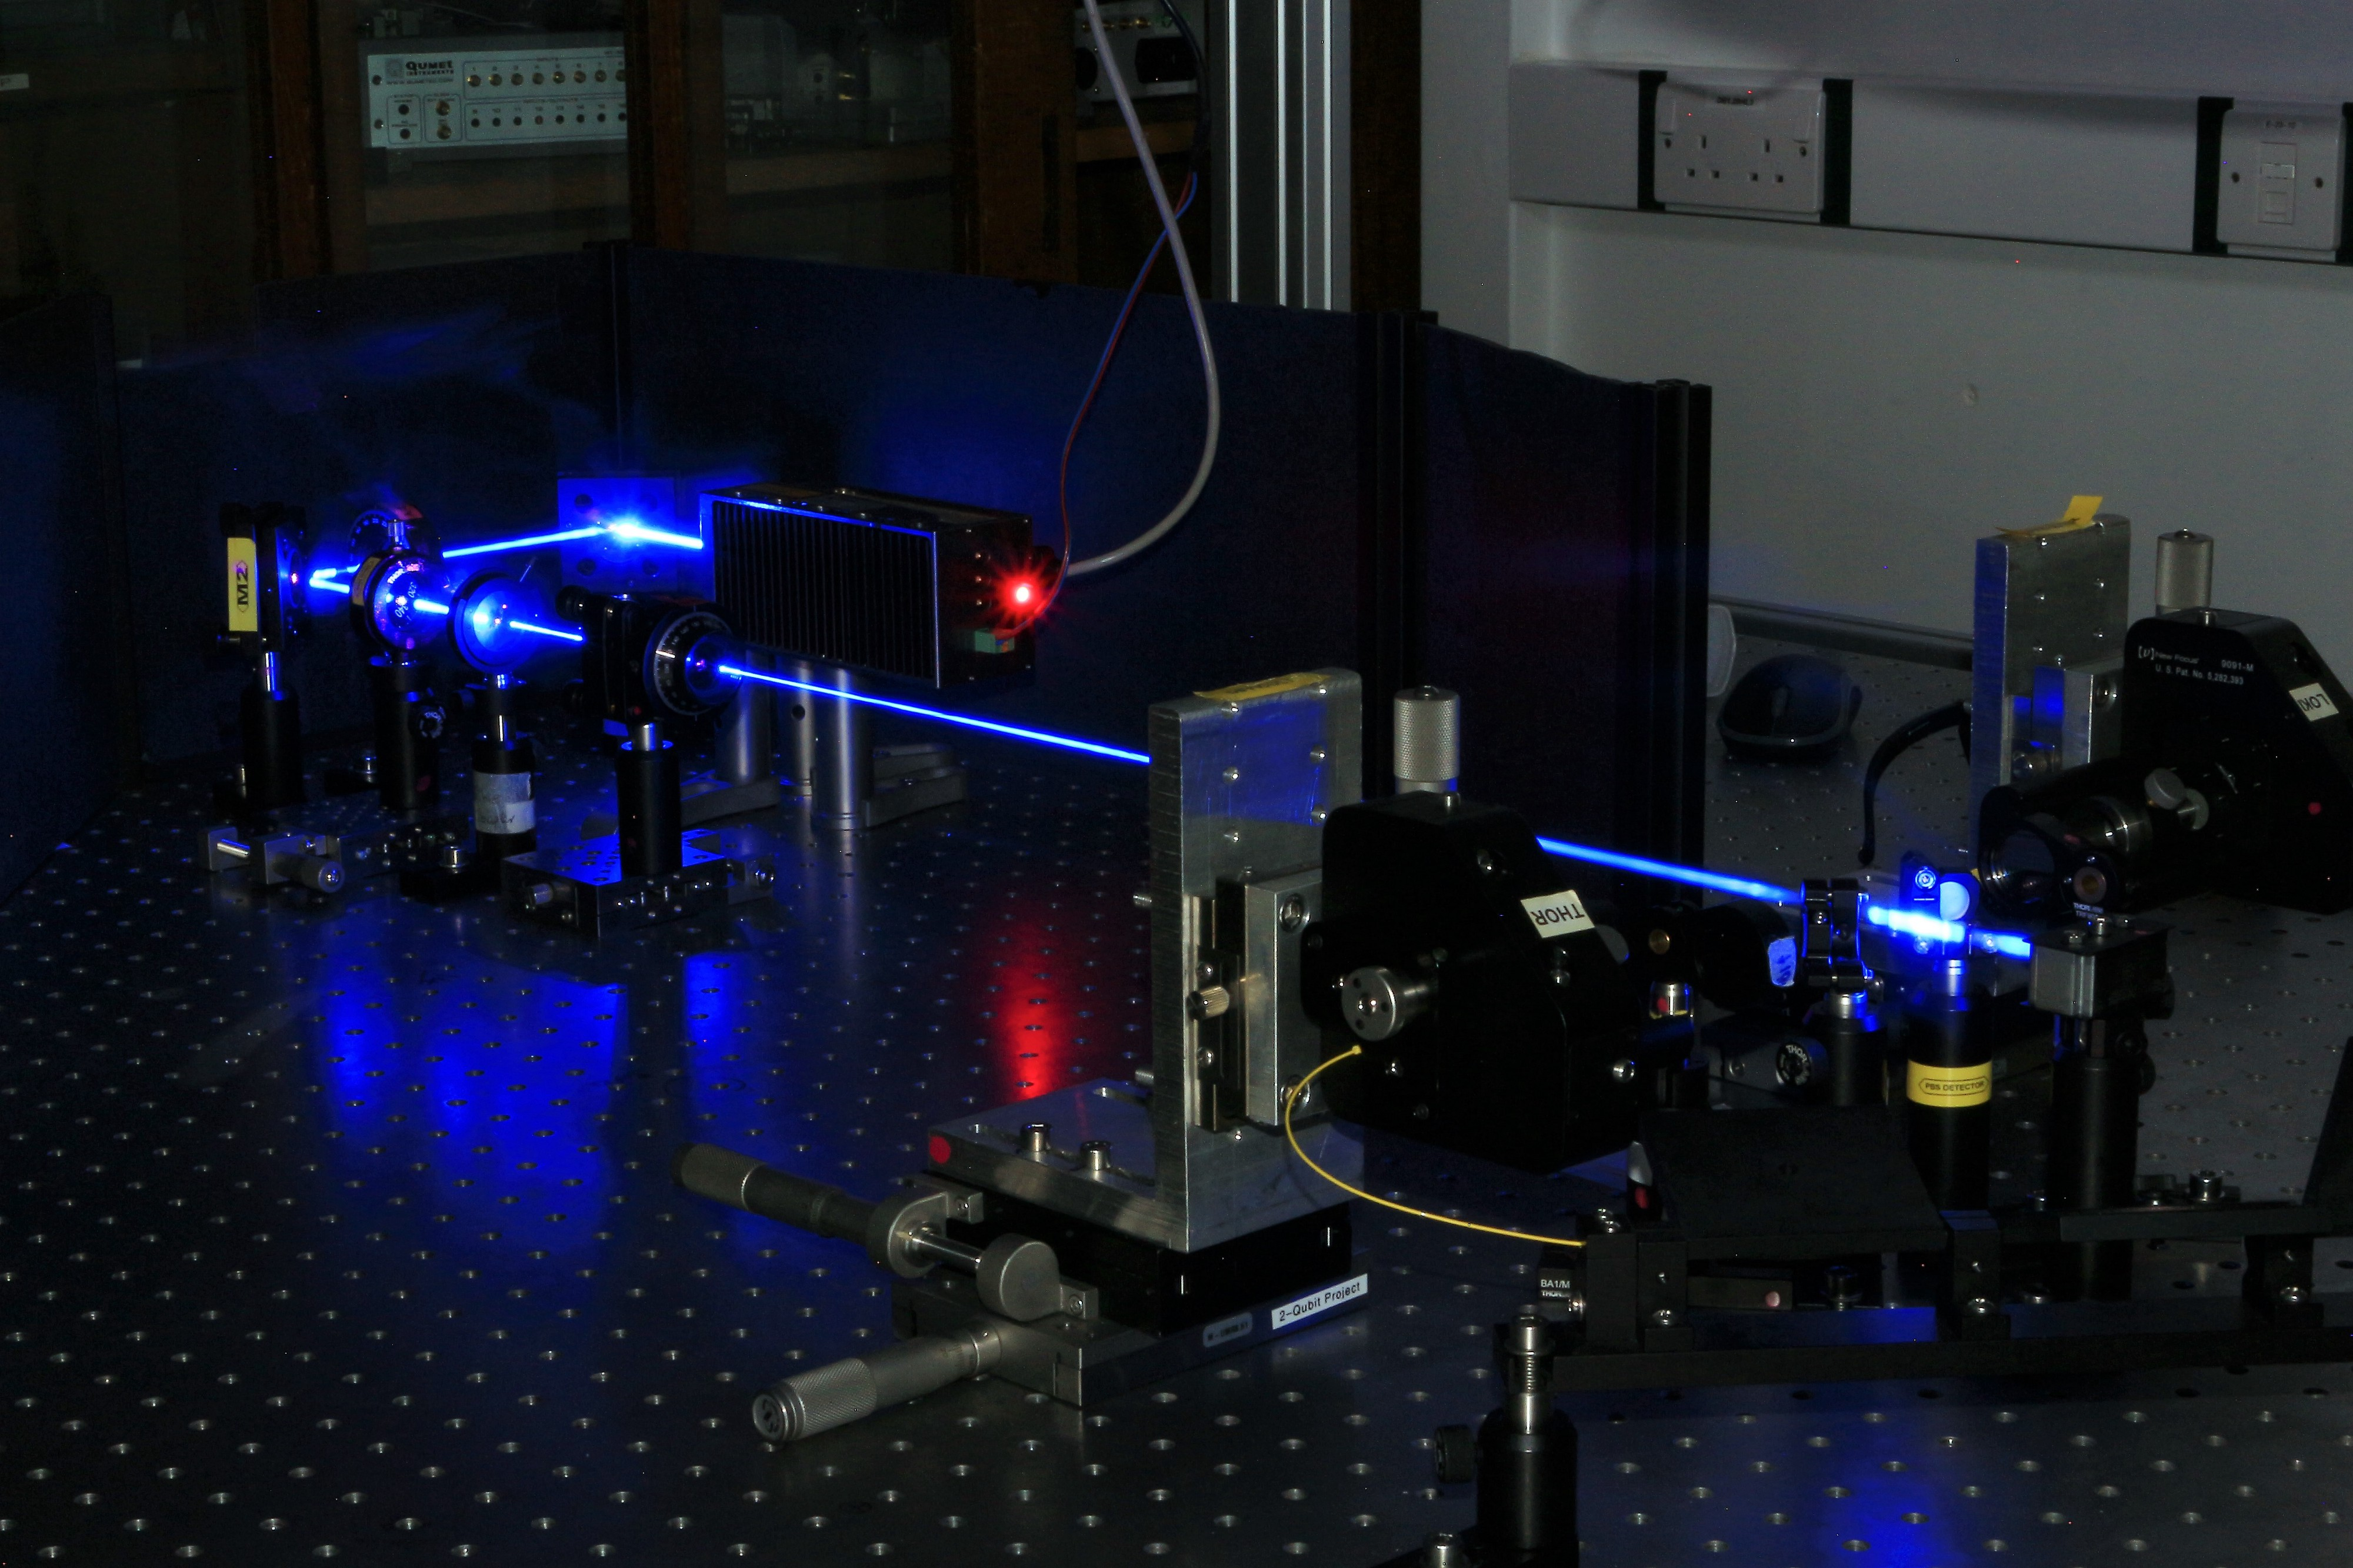 A table with a laser beam passing through optical equipment